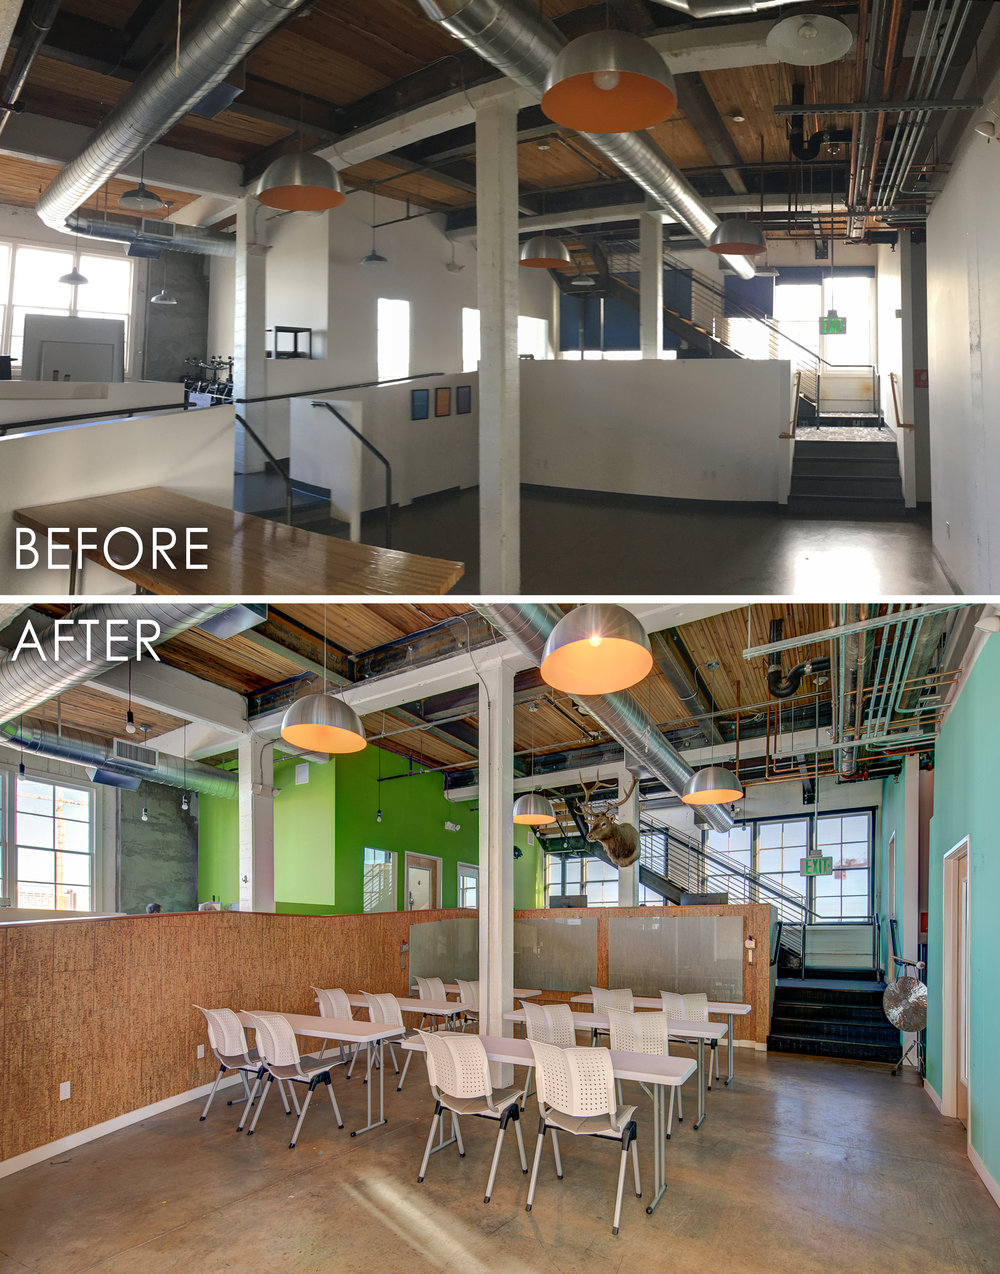 HarkaArchitecture-Graybox_Before-After-16.jpg